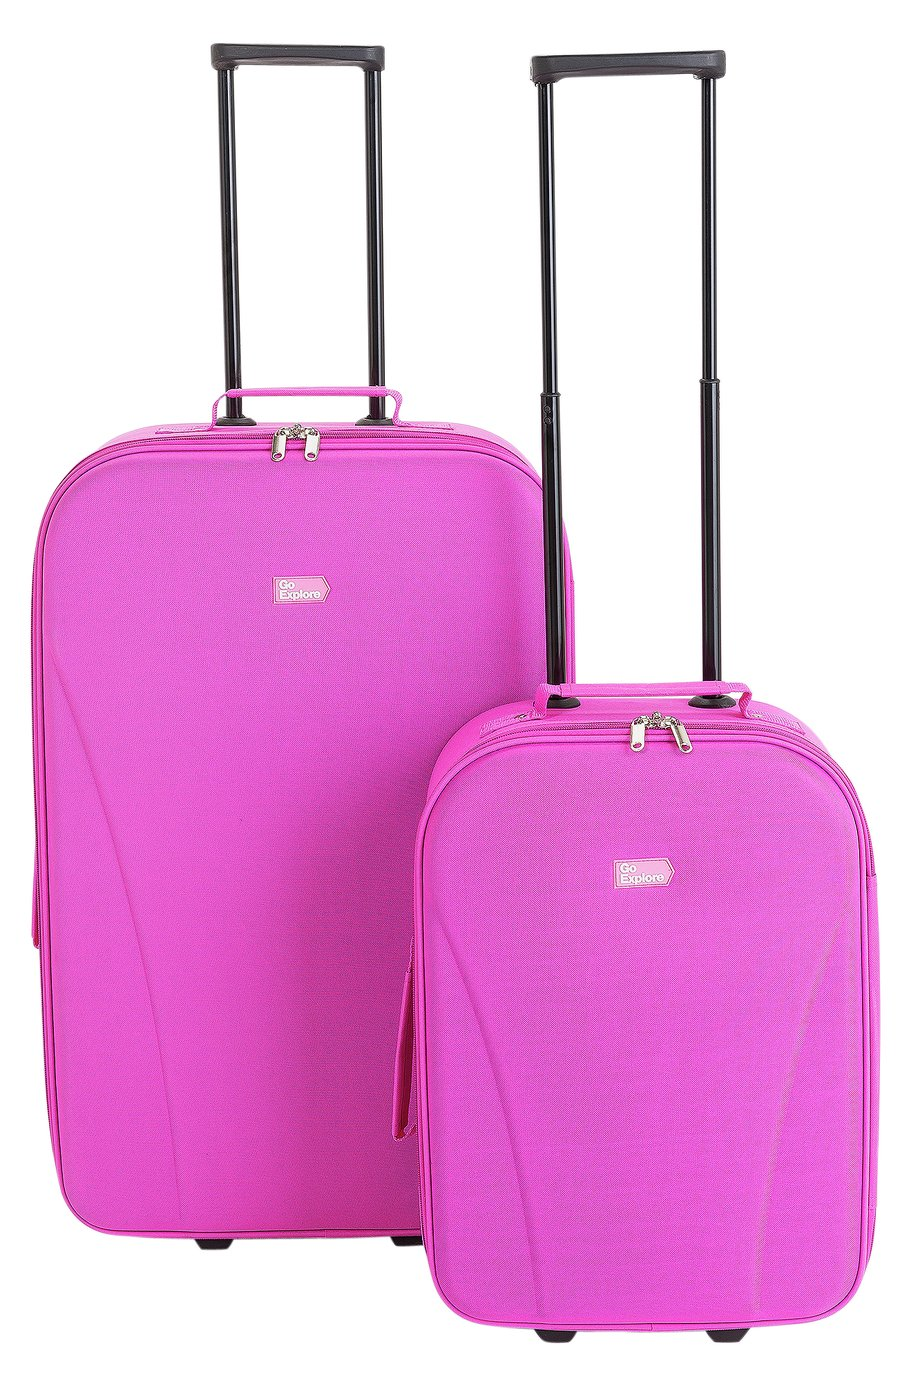 Go Explore 2 piece Soft Luggage Set - Pink lowest price